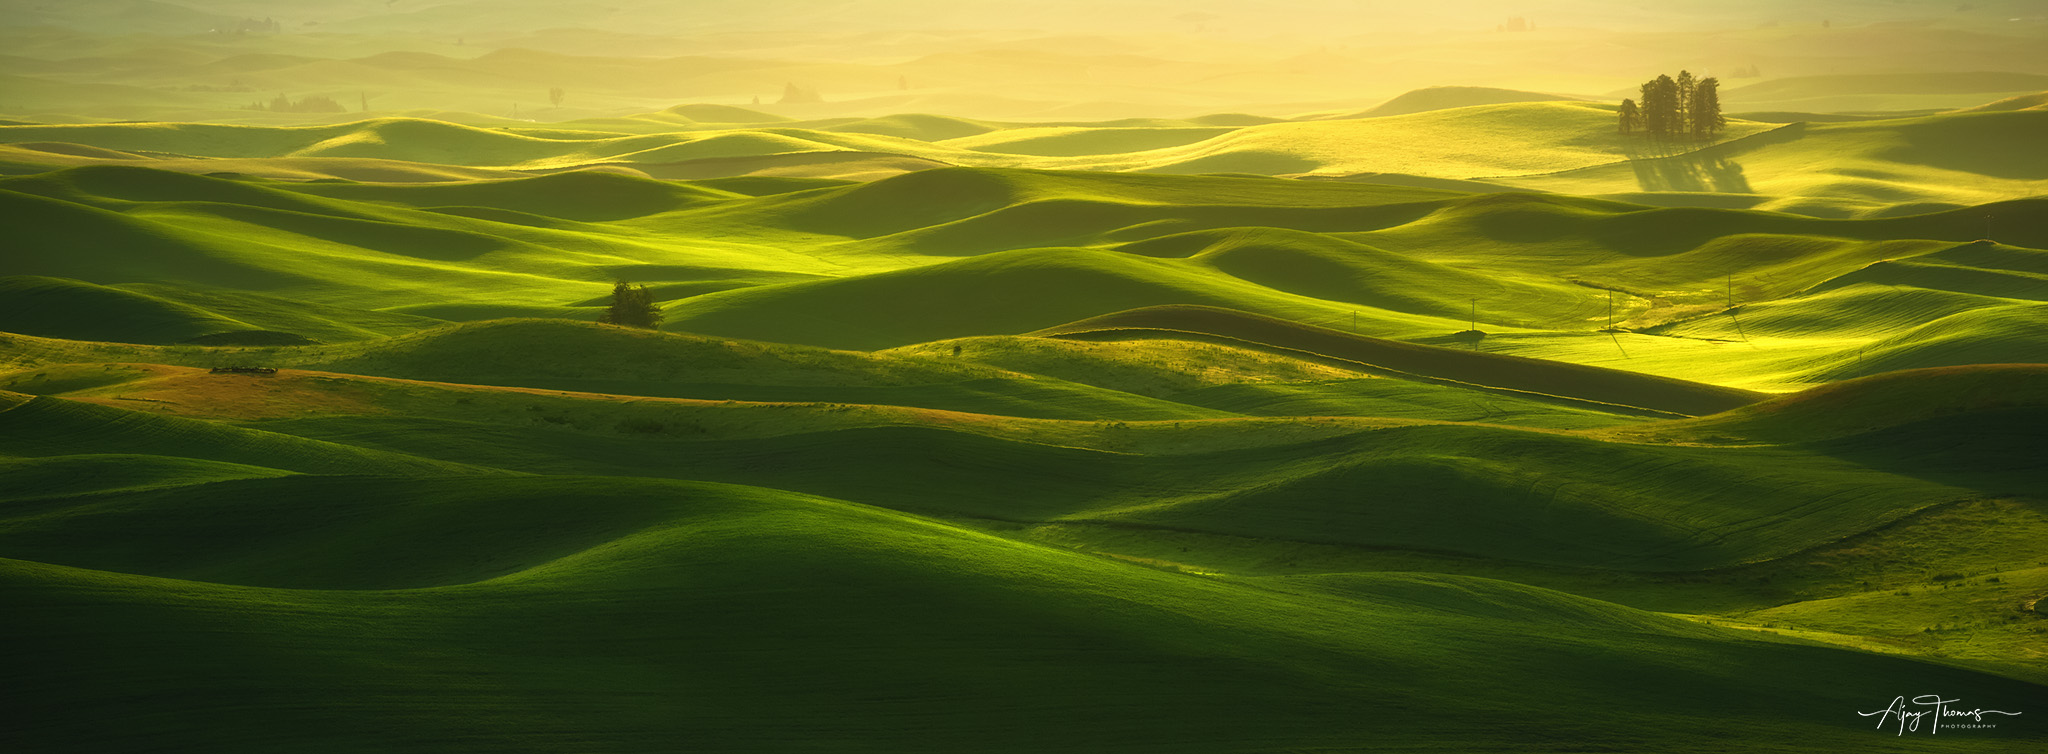 """Sometimes referred to as """"America's Tuscany,"""" the Palouse region of Washington and Idaho is an expanse of rolling hills..."""